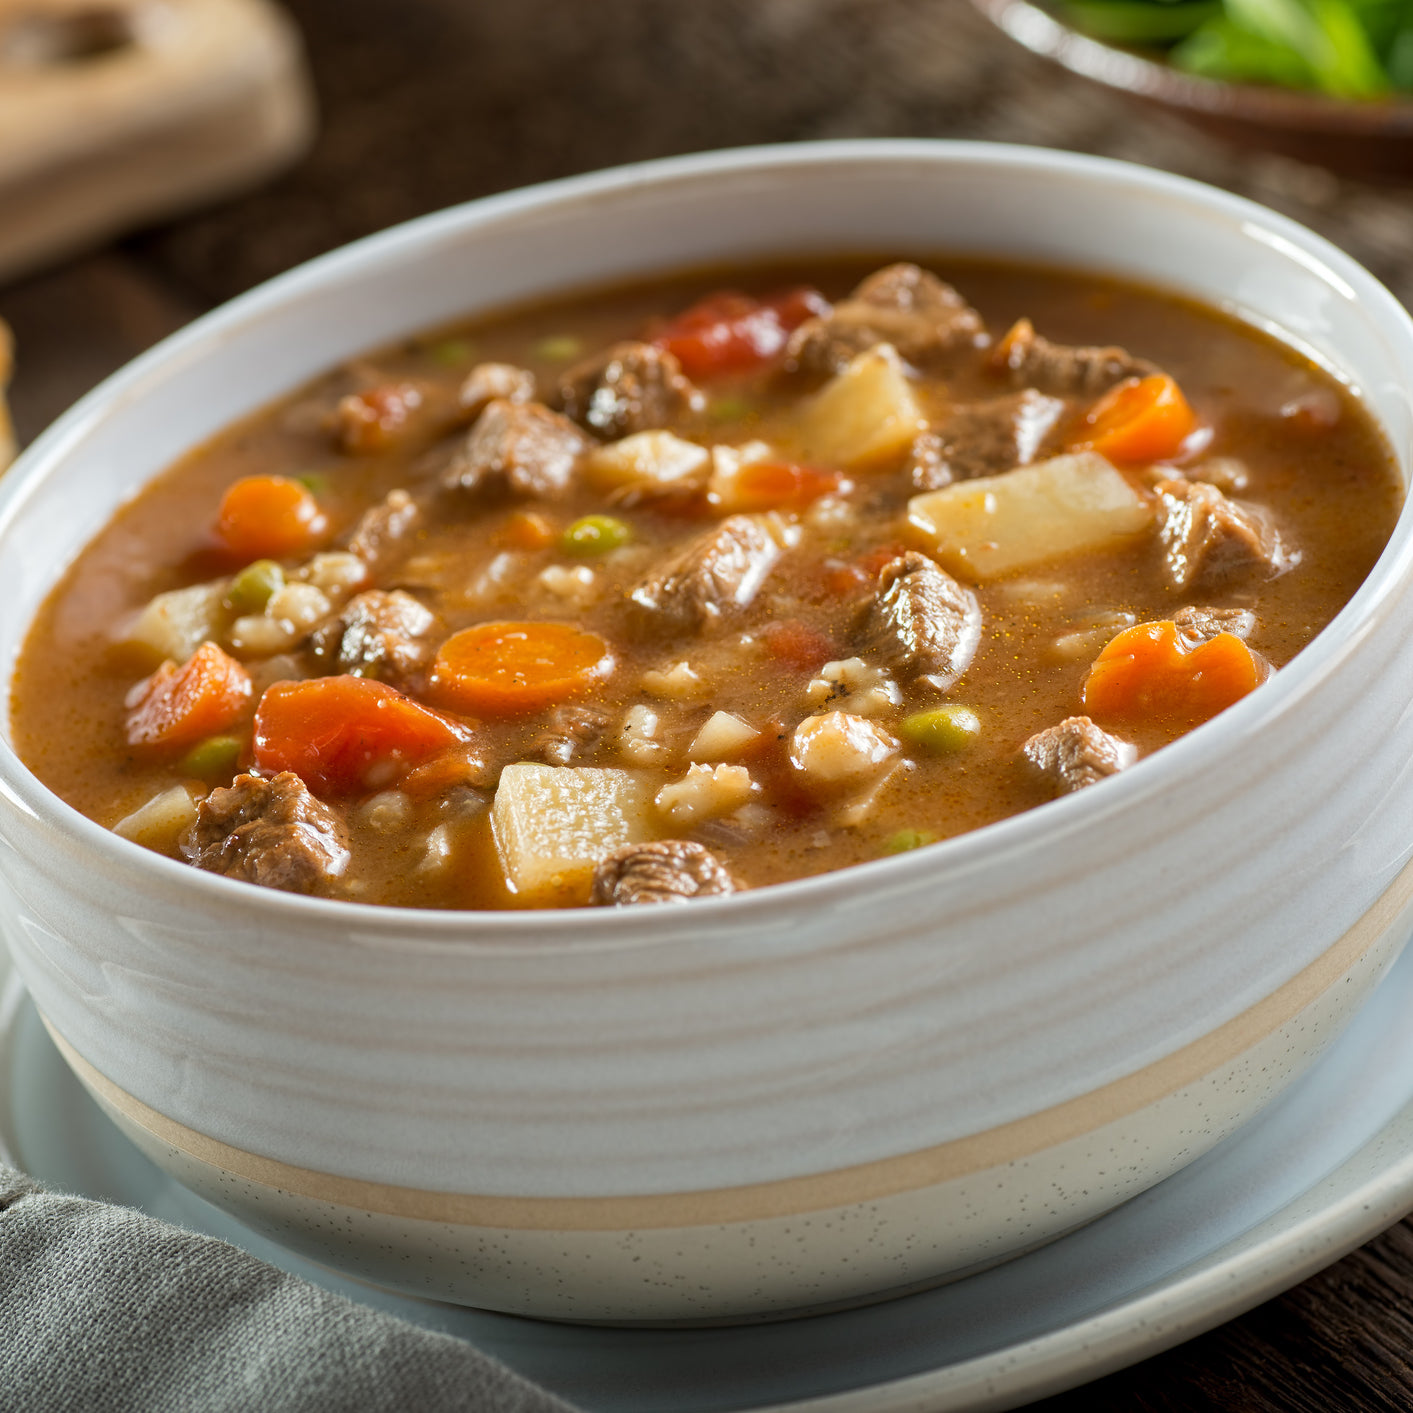 Hearty Beef Soup with Potatoes and Carrots